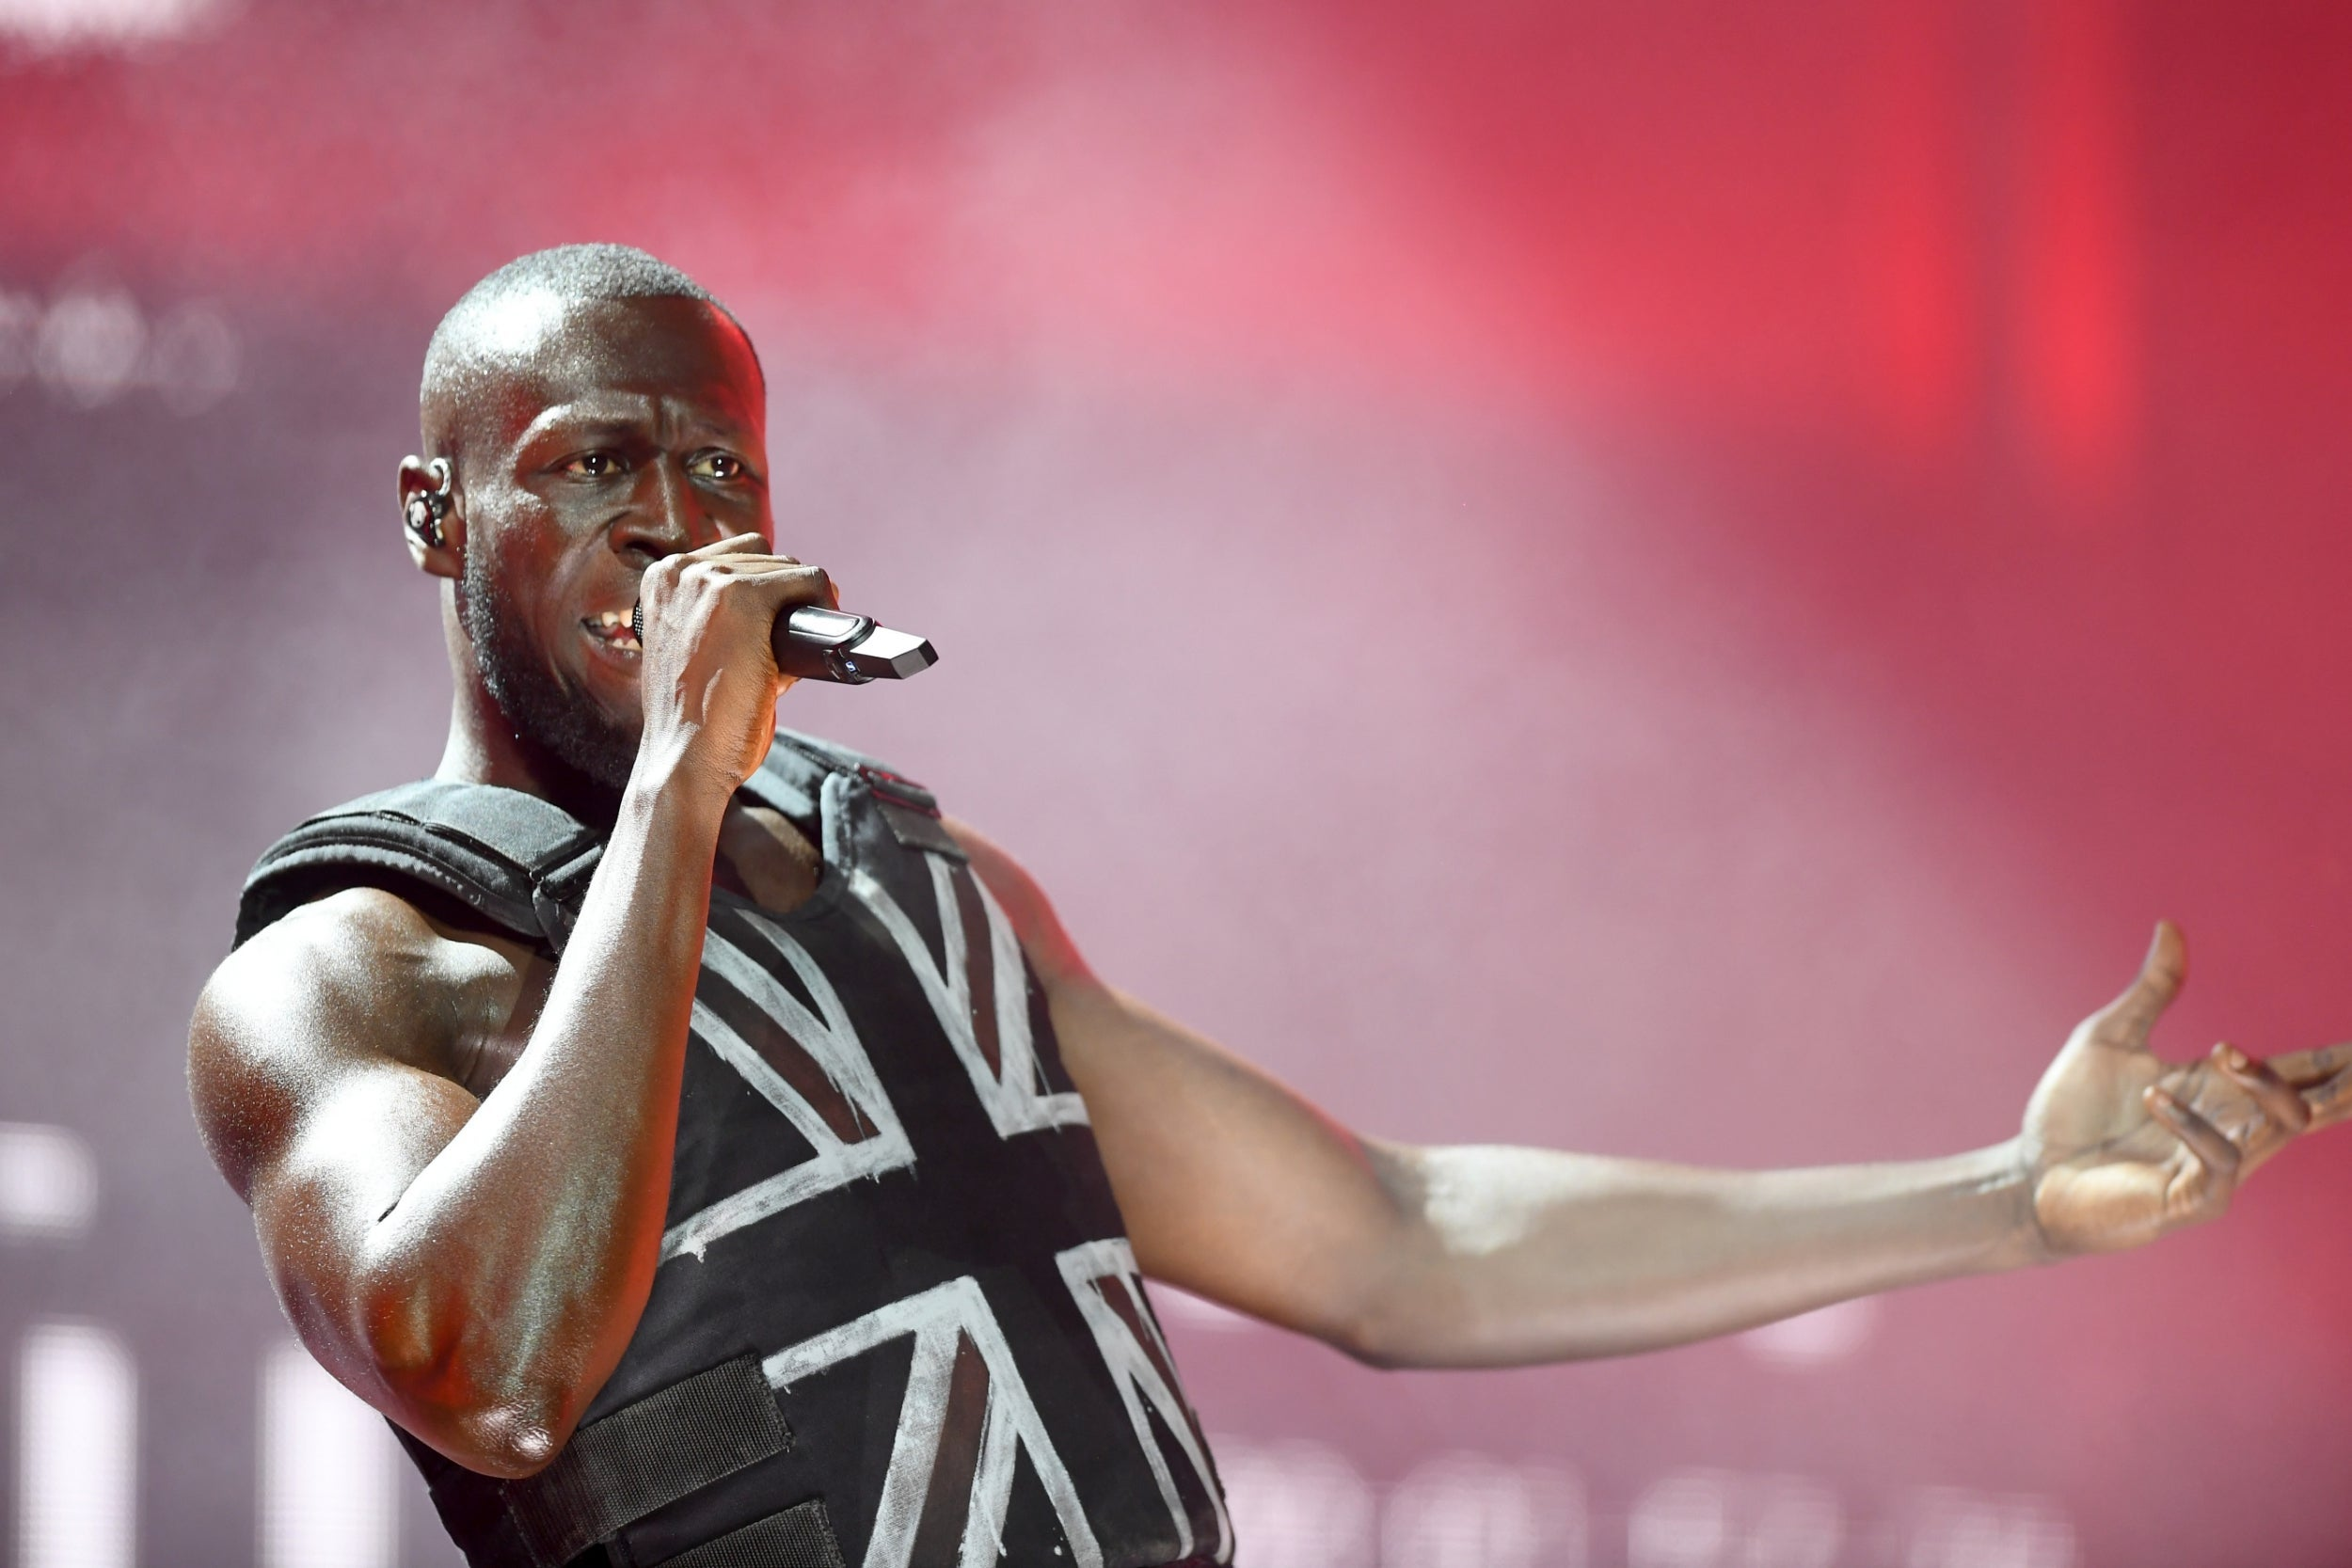 Glastonbury 2019: Stormzy gets crowd to shout 'F**k Boris' on live BBC TV